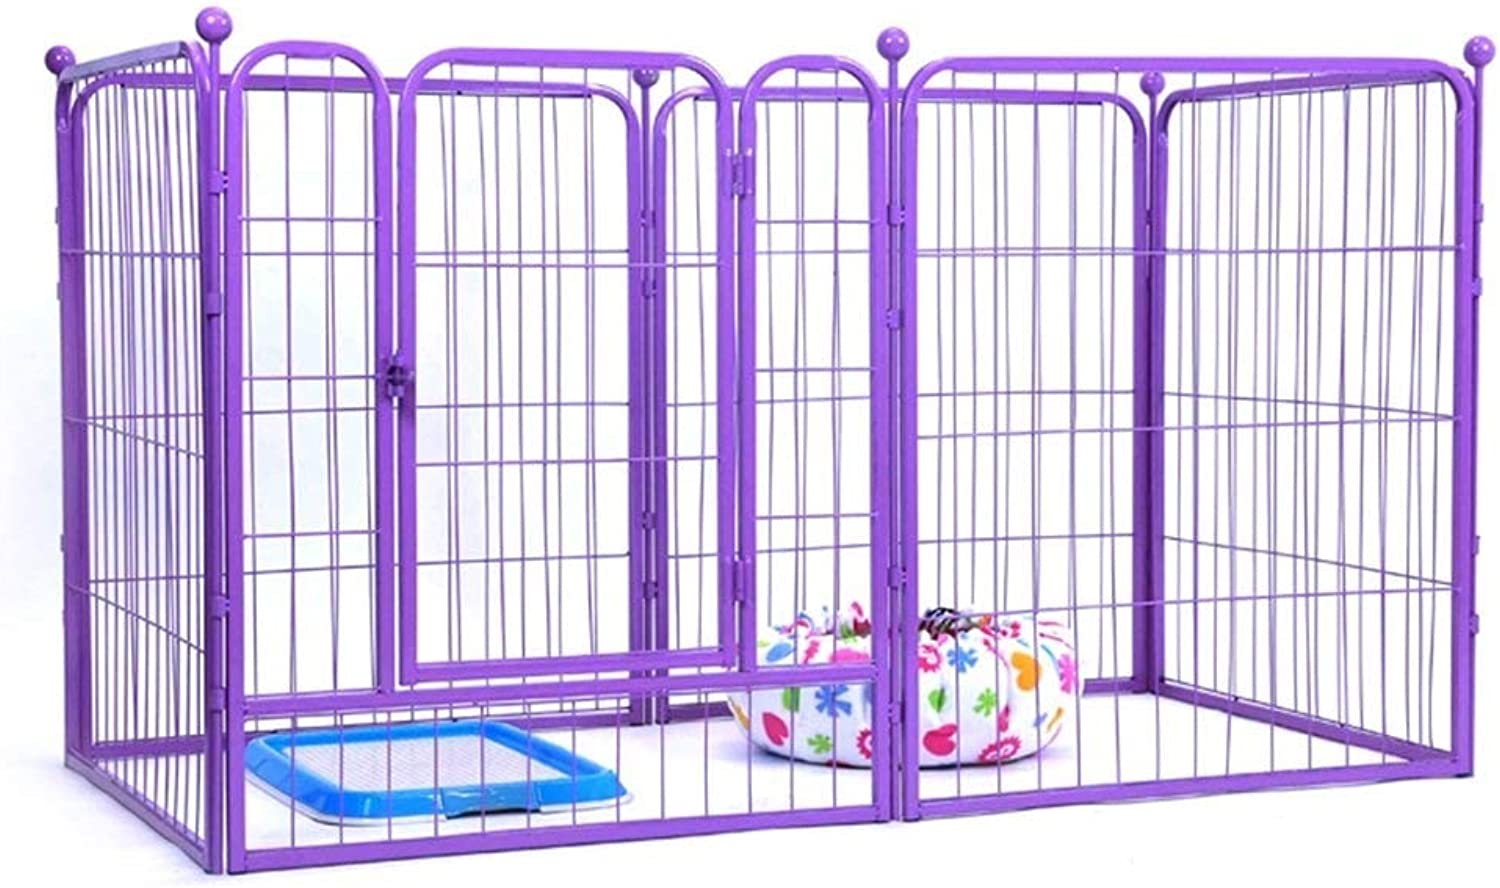 GBY Welpenzaun Heavyduty 6panel shell dog pet cat pen cage puppy playing fence running large 80 x 100 cm Tragbarer zusammenklappbarer Haustierzaun (Size   160  80  100CM)